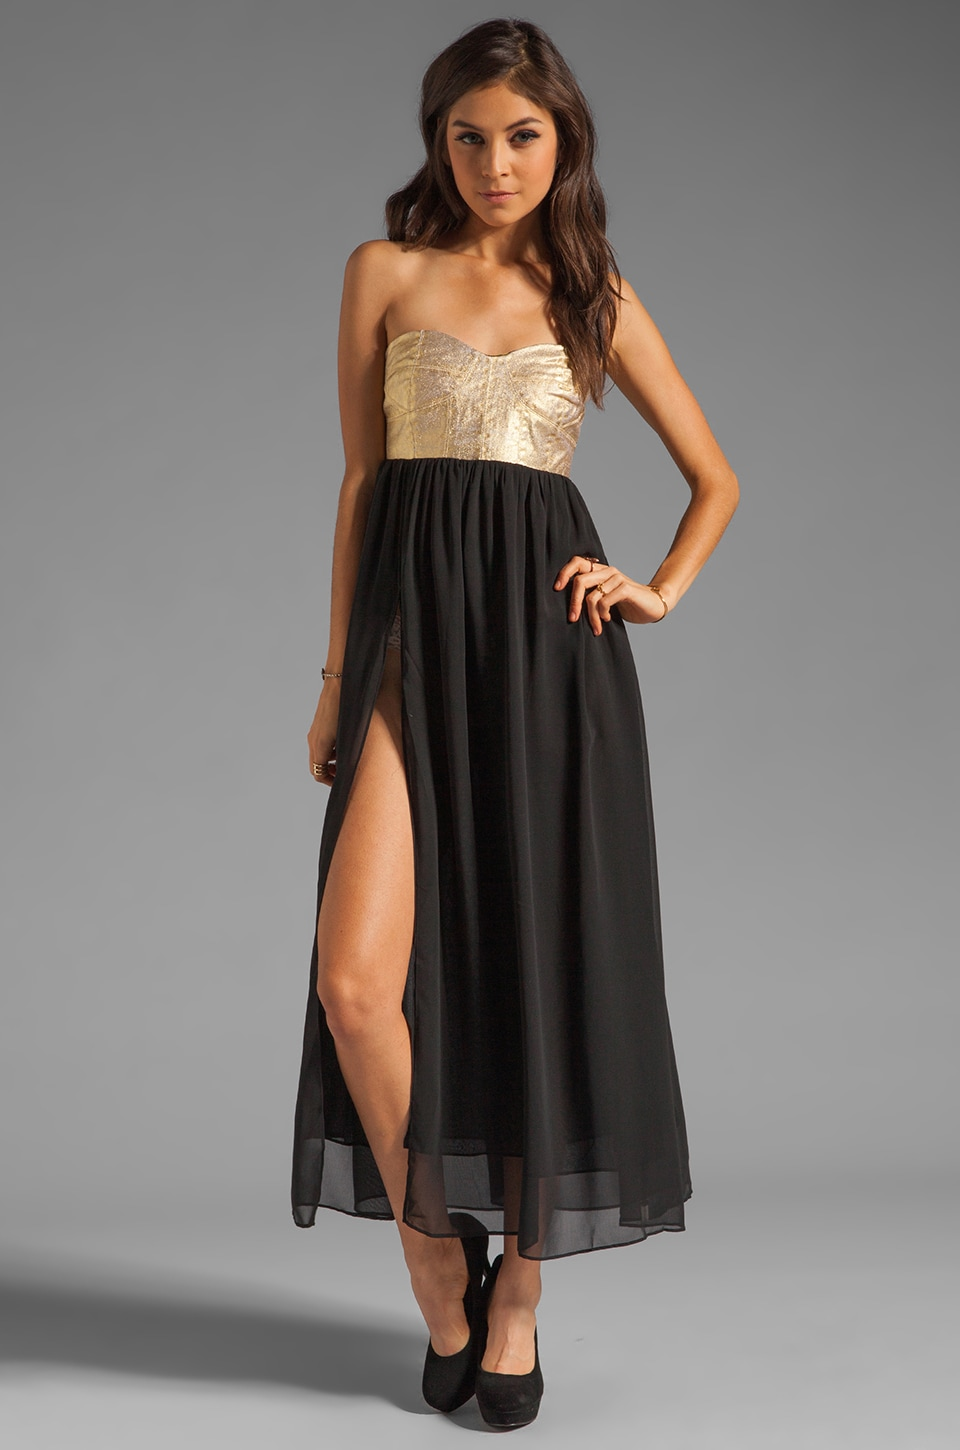 One Teaspoon Cash On Sequin Bustier Maxi Dress in Gold/Black